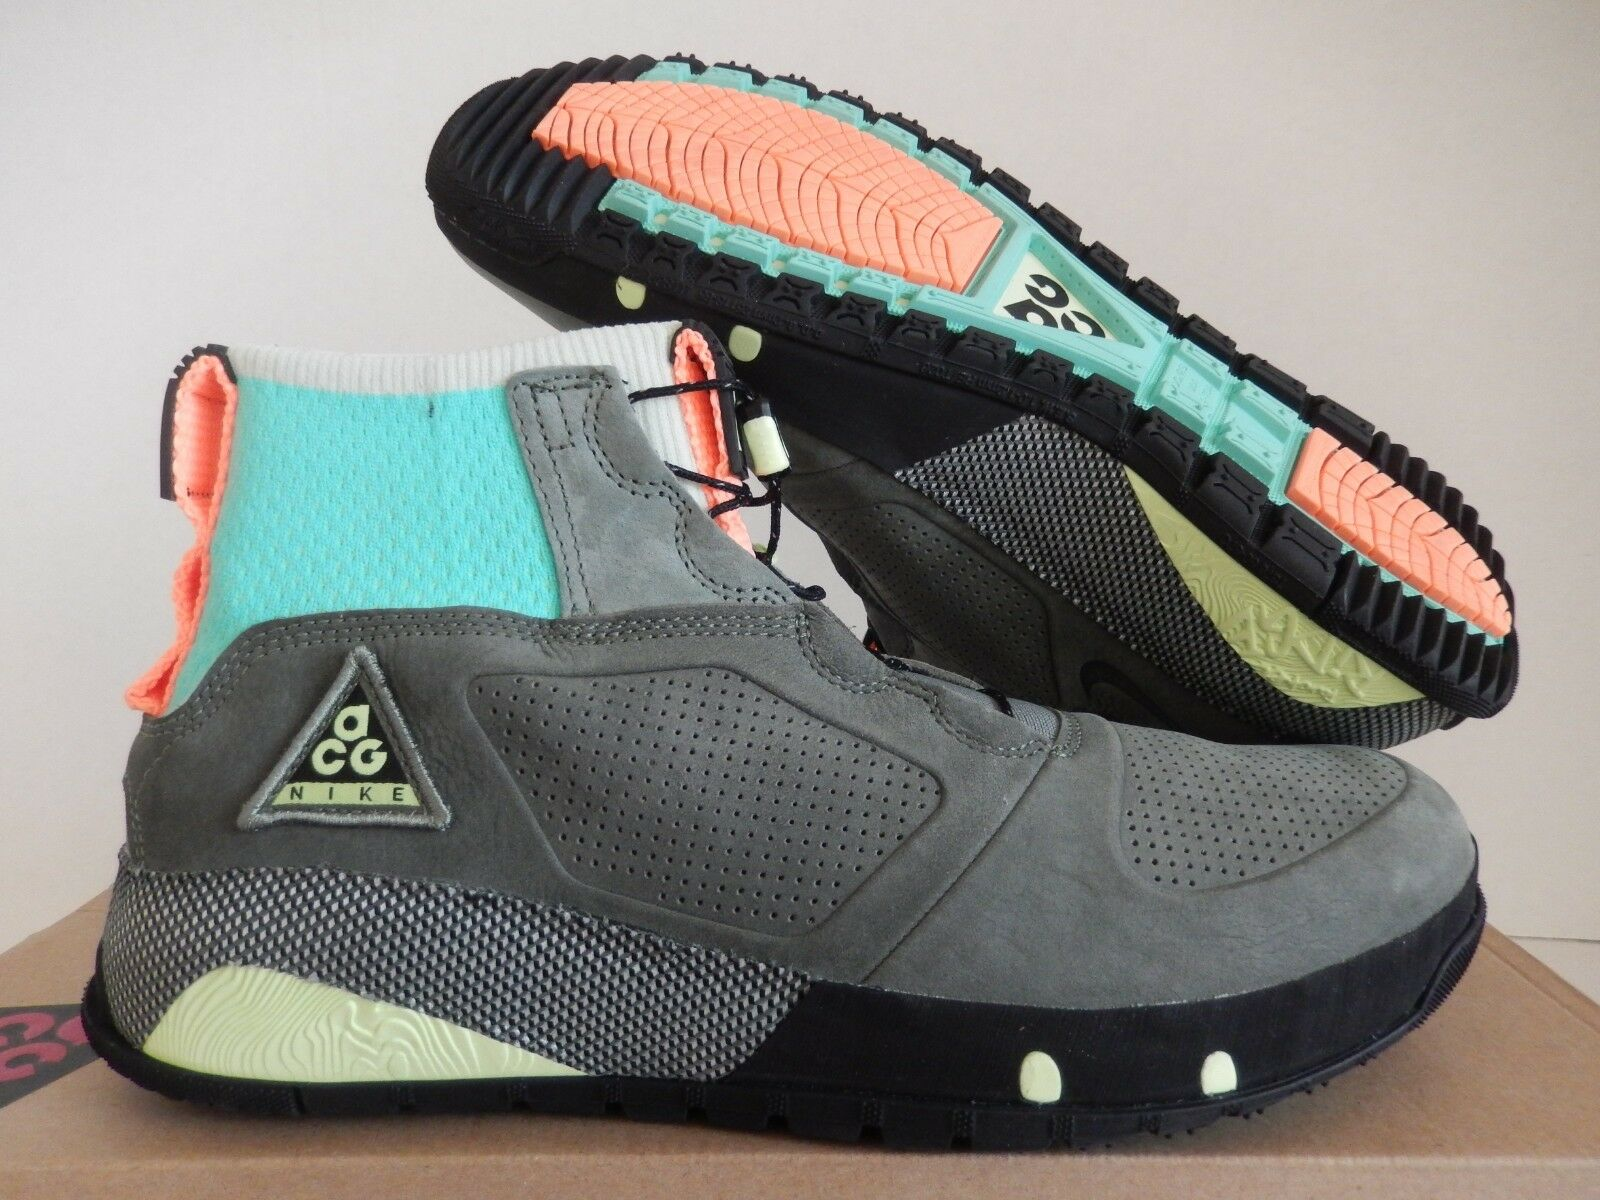 NIKE ACG RUCKEL RIDGE MULTI COLOR-CLAY GREEN-BLACK SZ 10.5 [AQ9333-900]